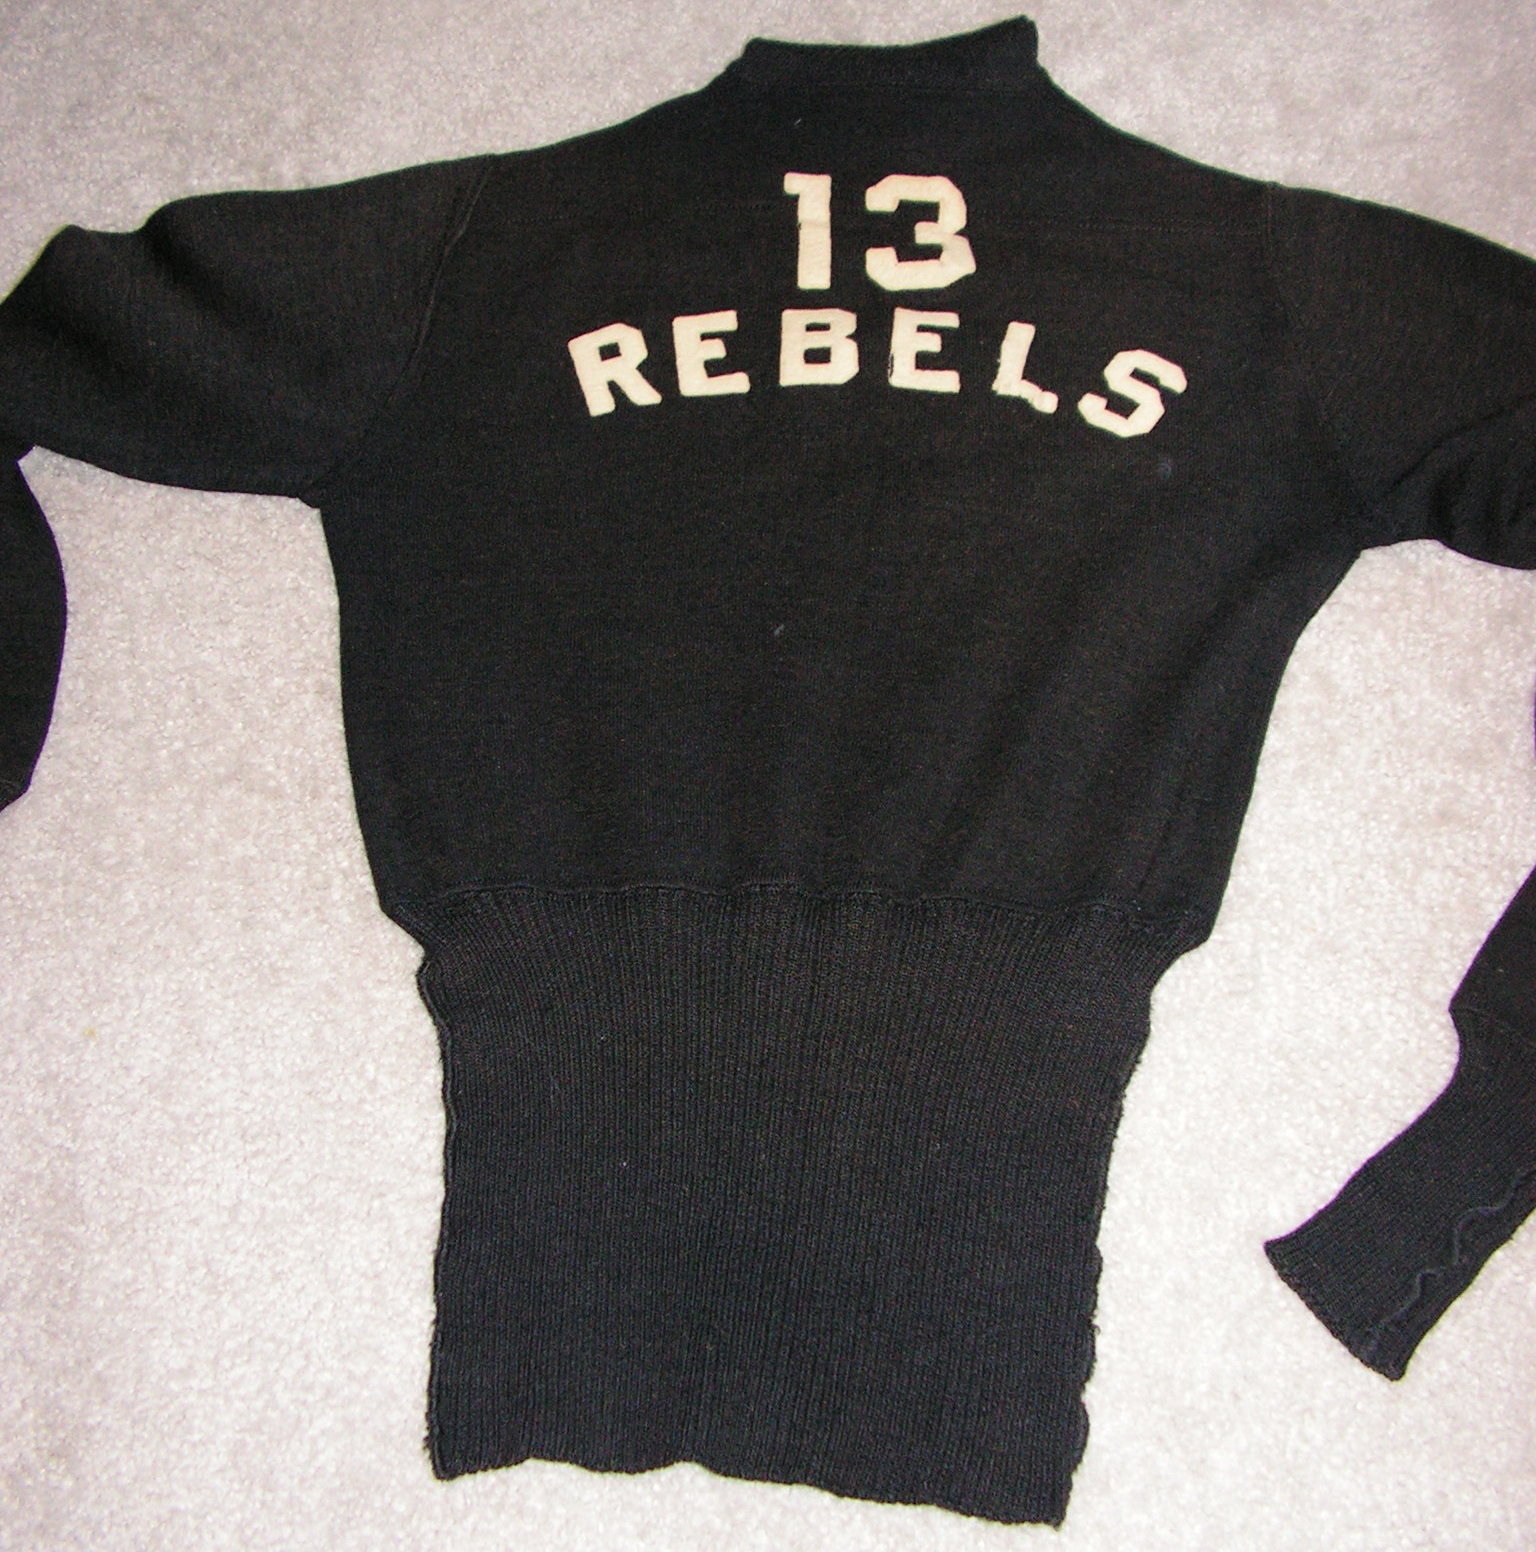 13 Rebels sweater back